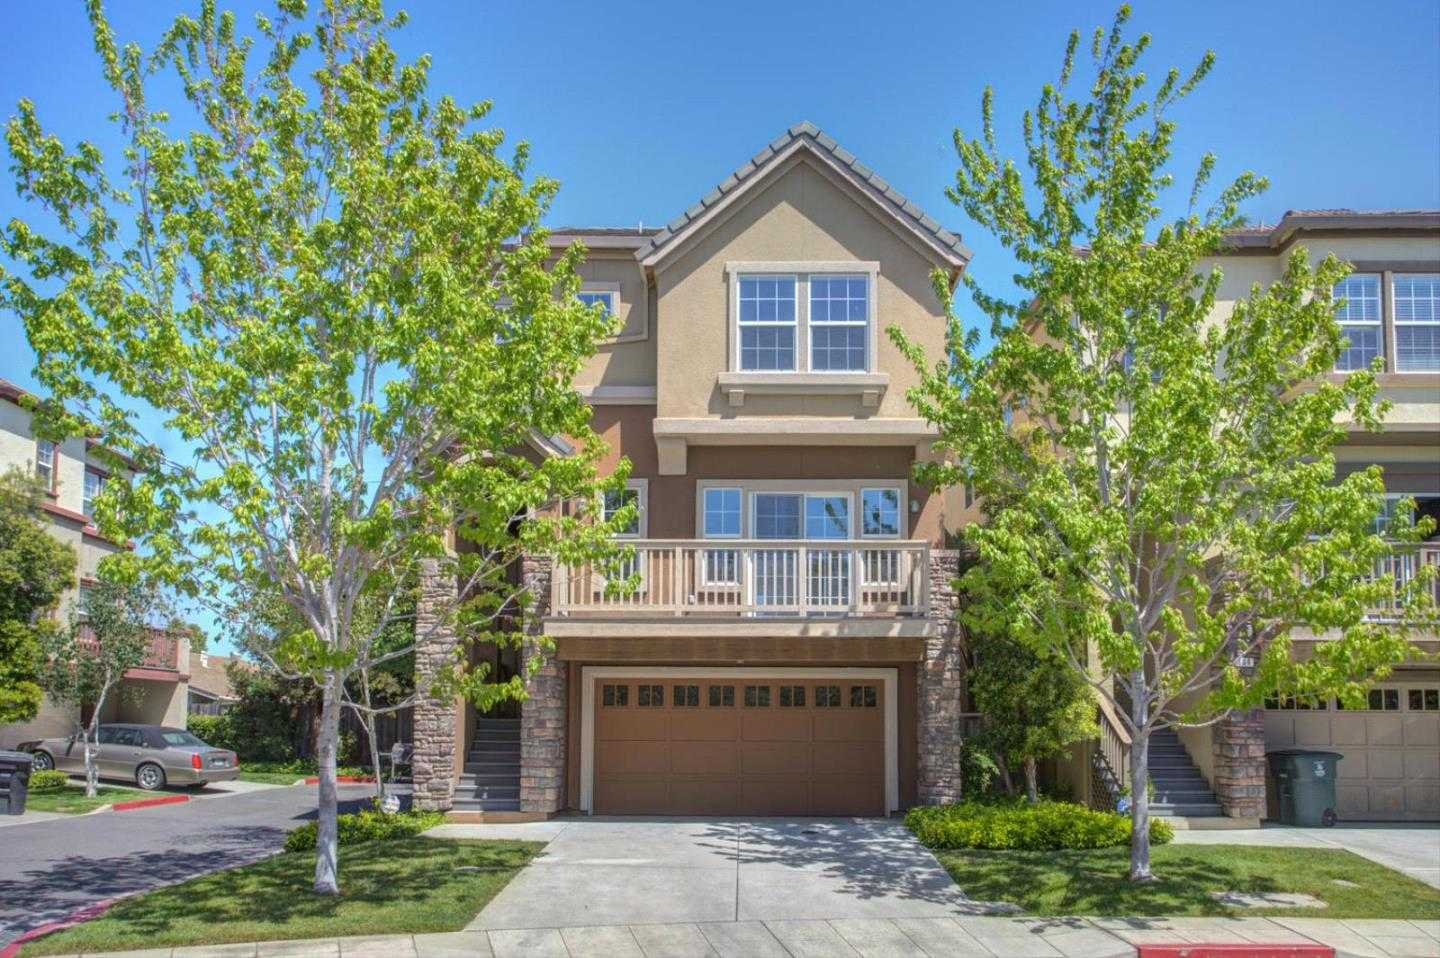 $1,249,900 - 4Br/3Ba -  for Sale in East Palo Alto